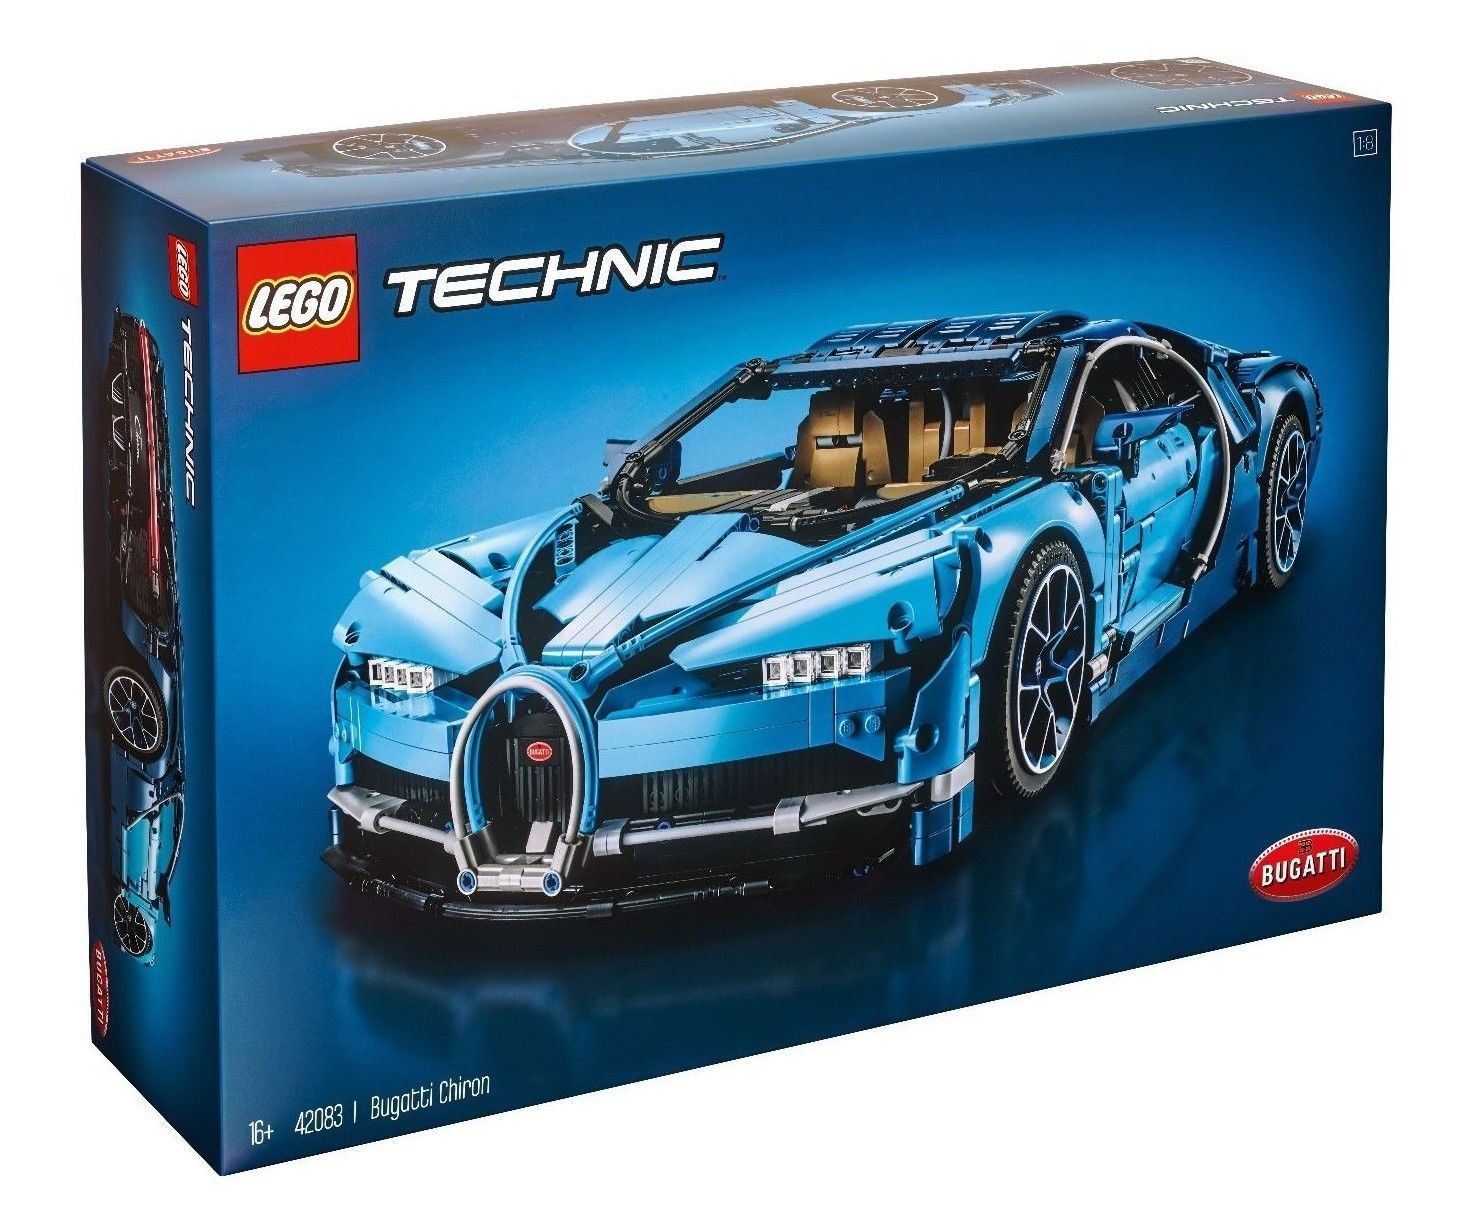 Lego Technic Bugatti Chiron Blue Race Car Set 42083 1 8 Scale Replica Model Bugatti Chiron Bugatti Lego Technic